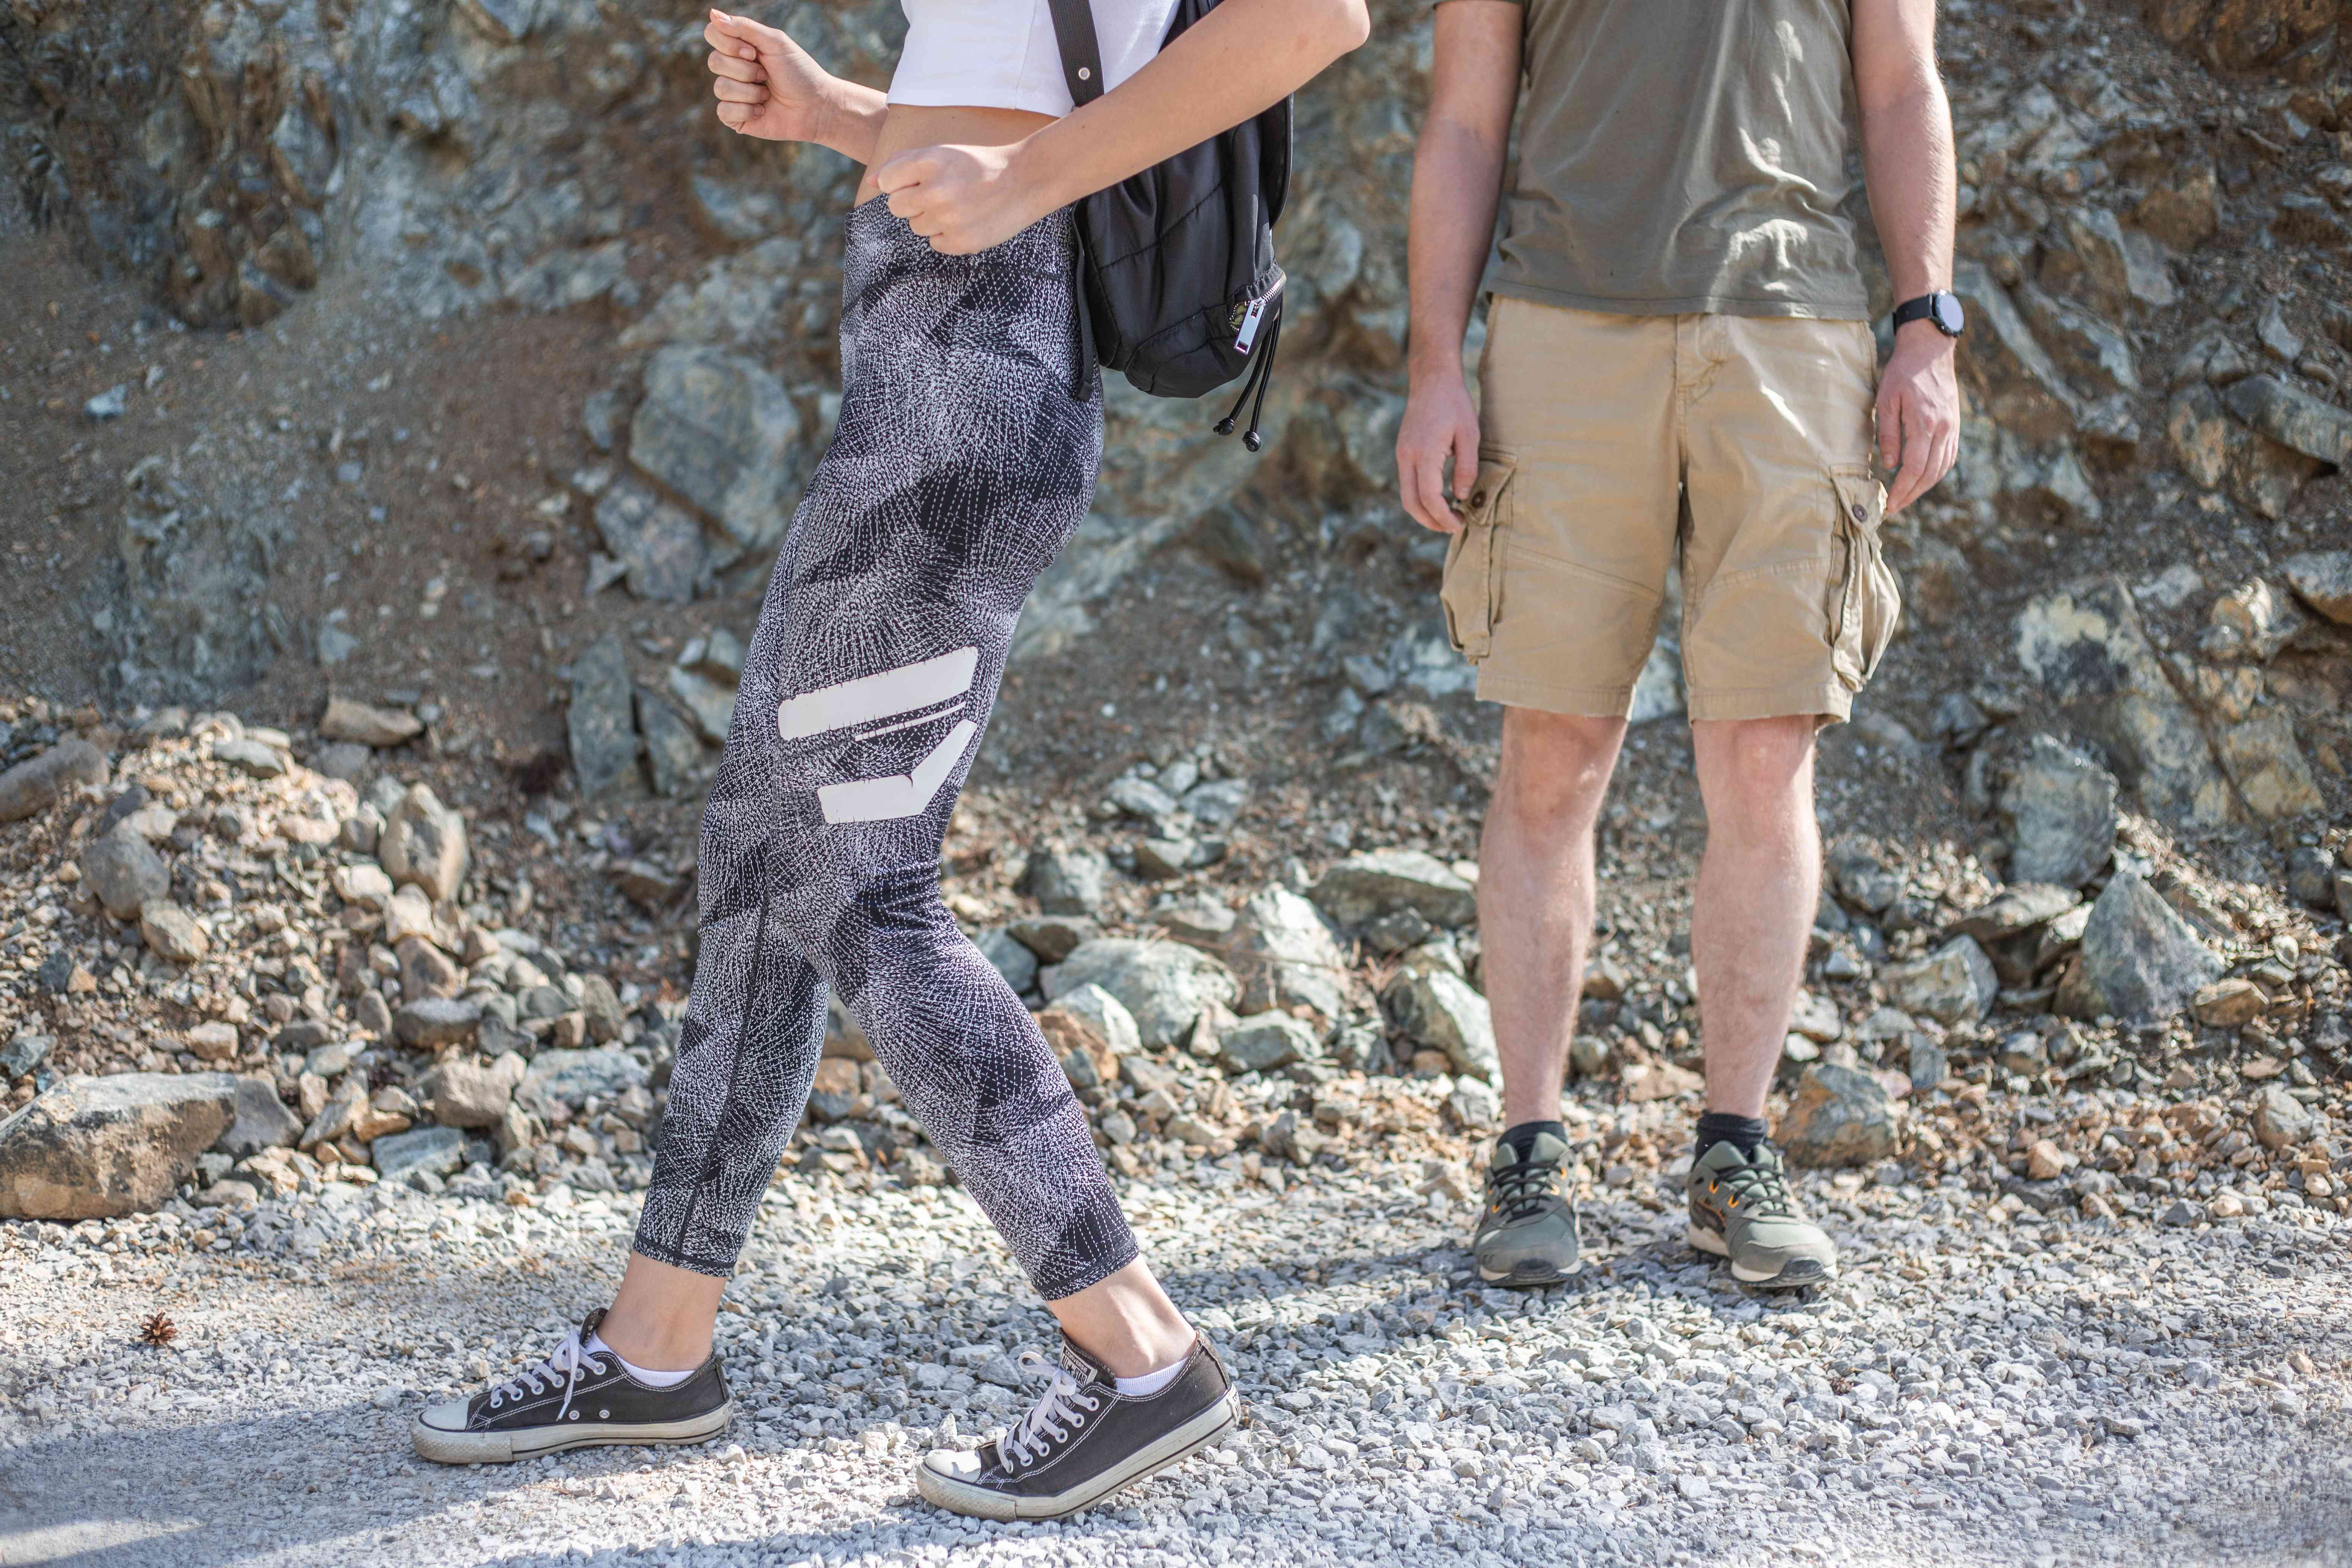 woman in workout clothes walks backward on gravel trail while exercise partner watches